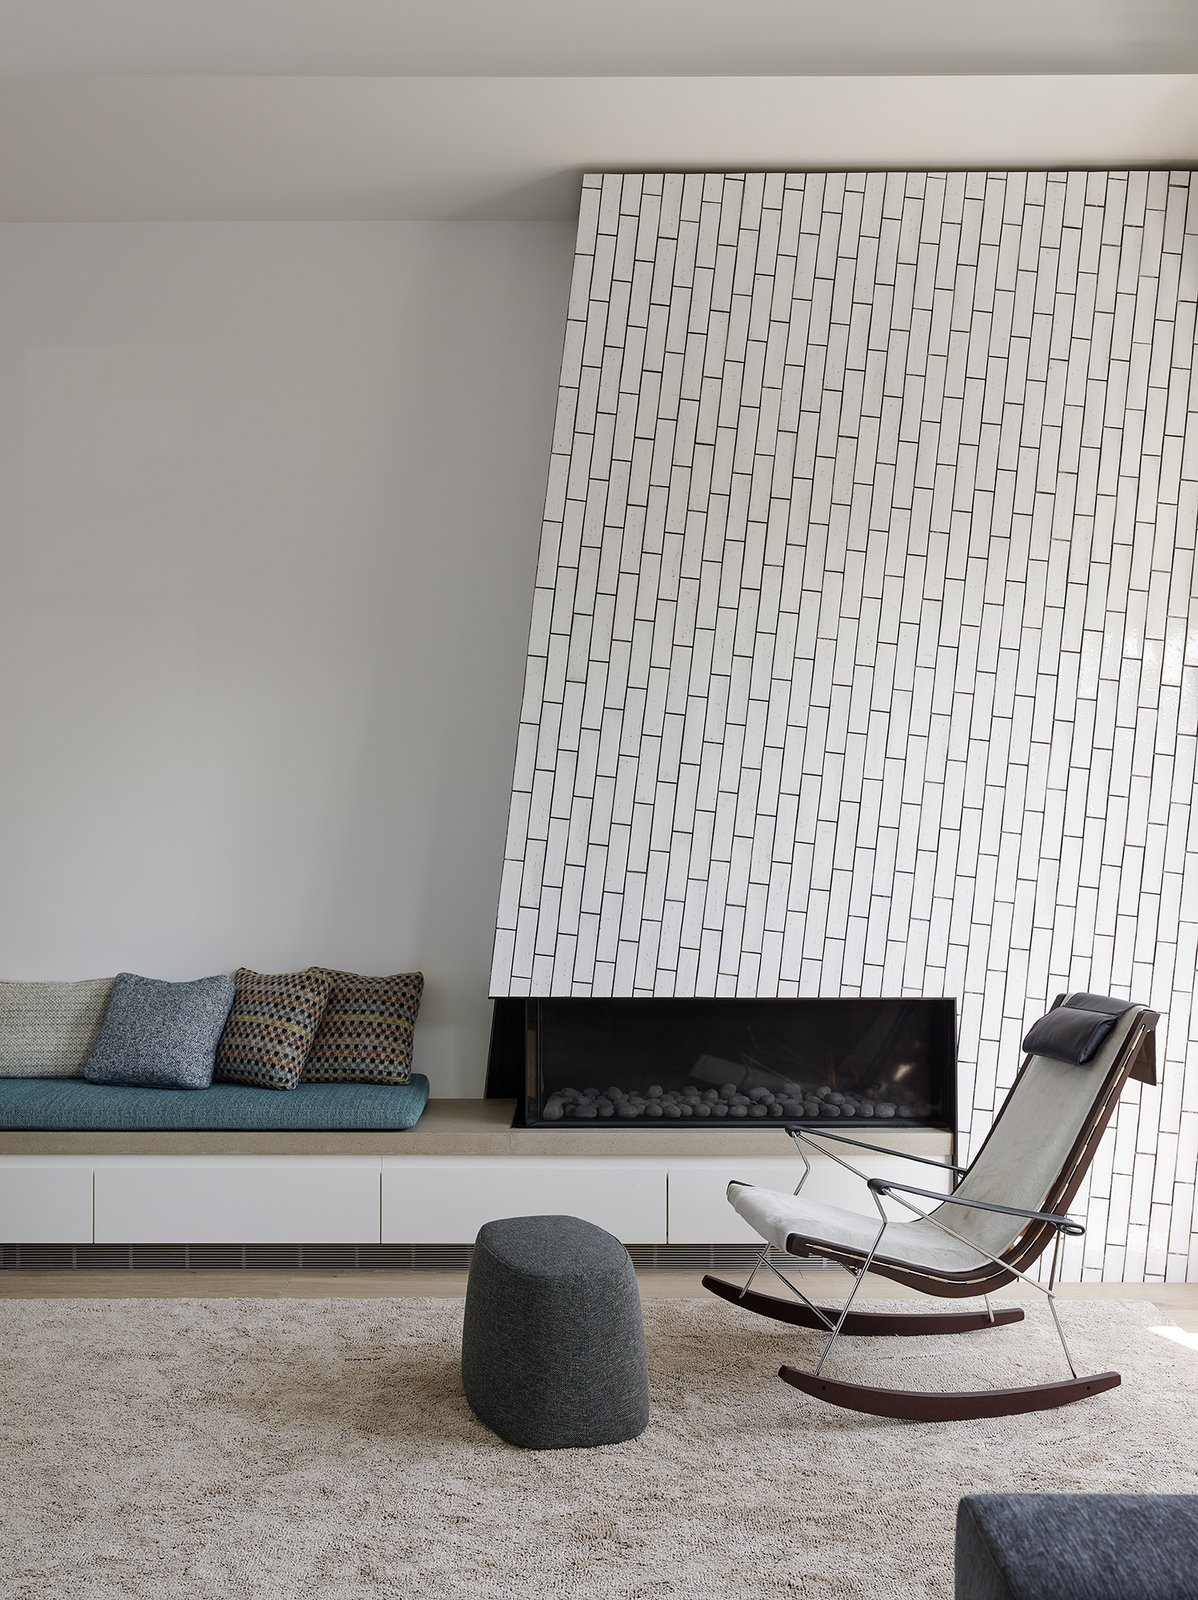 The Angled Fireplace Is Clad In Grove Brickworks Field Tile From Waterworks Laid Vertically With